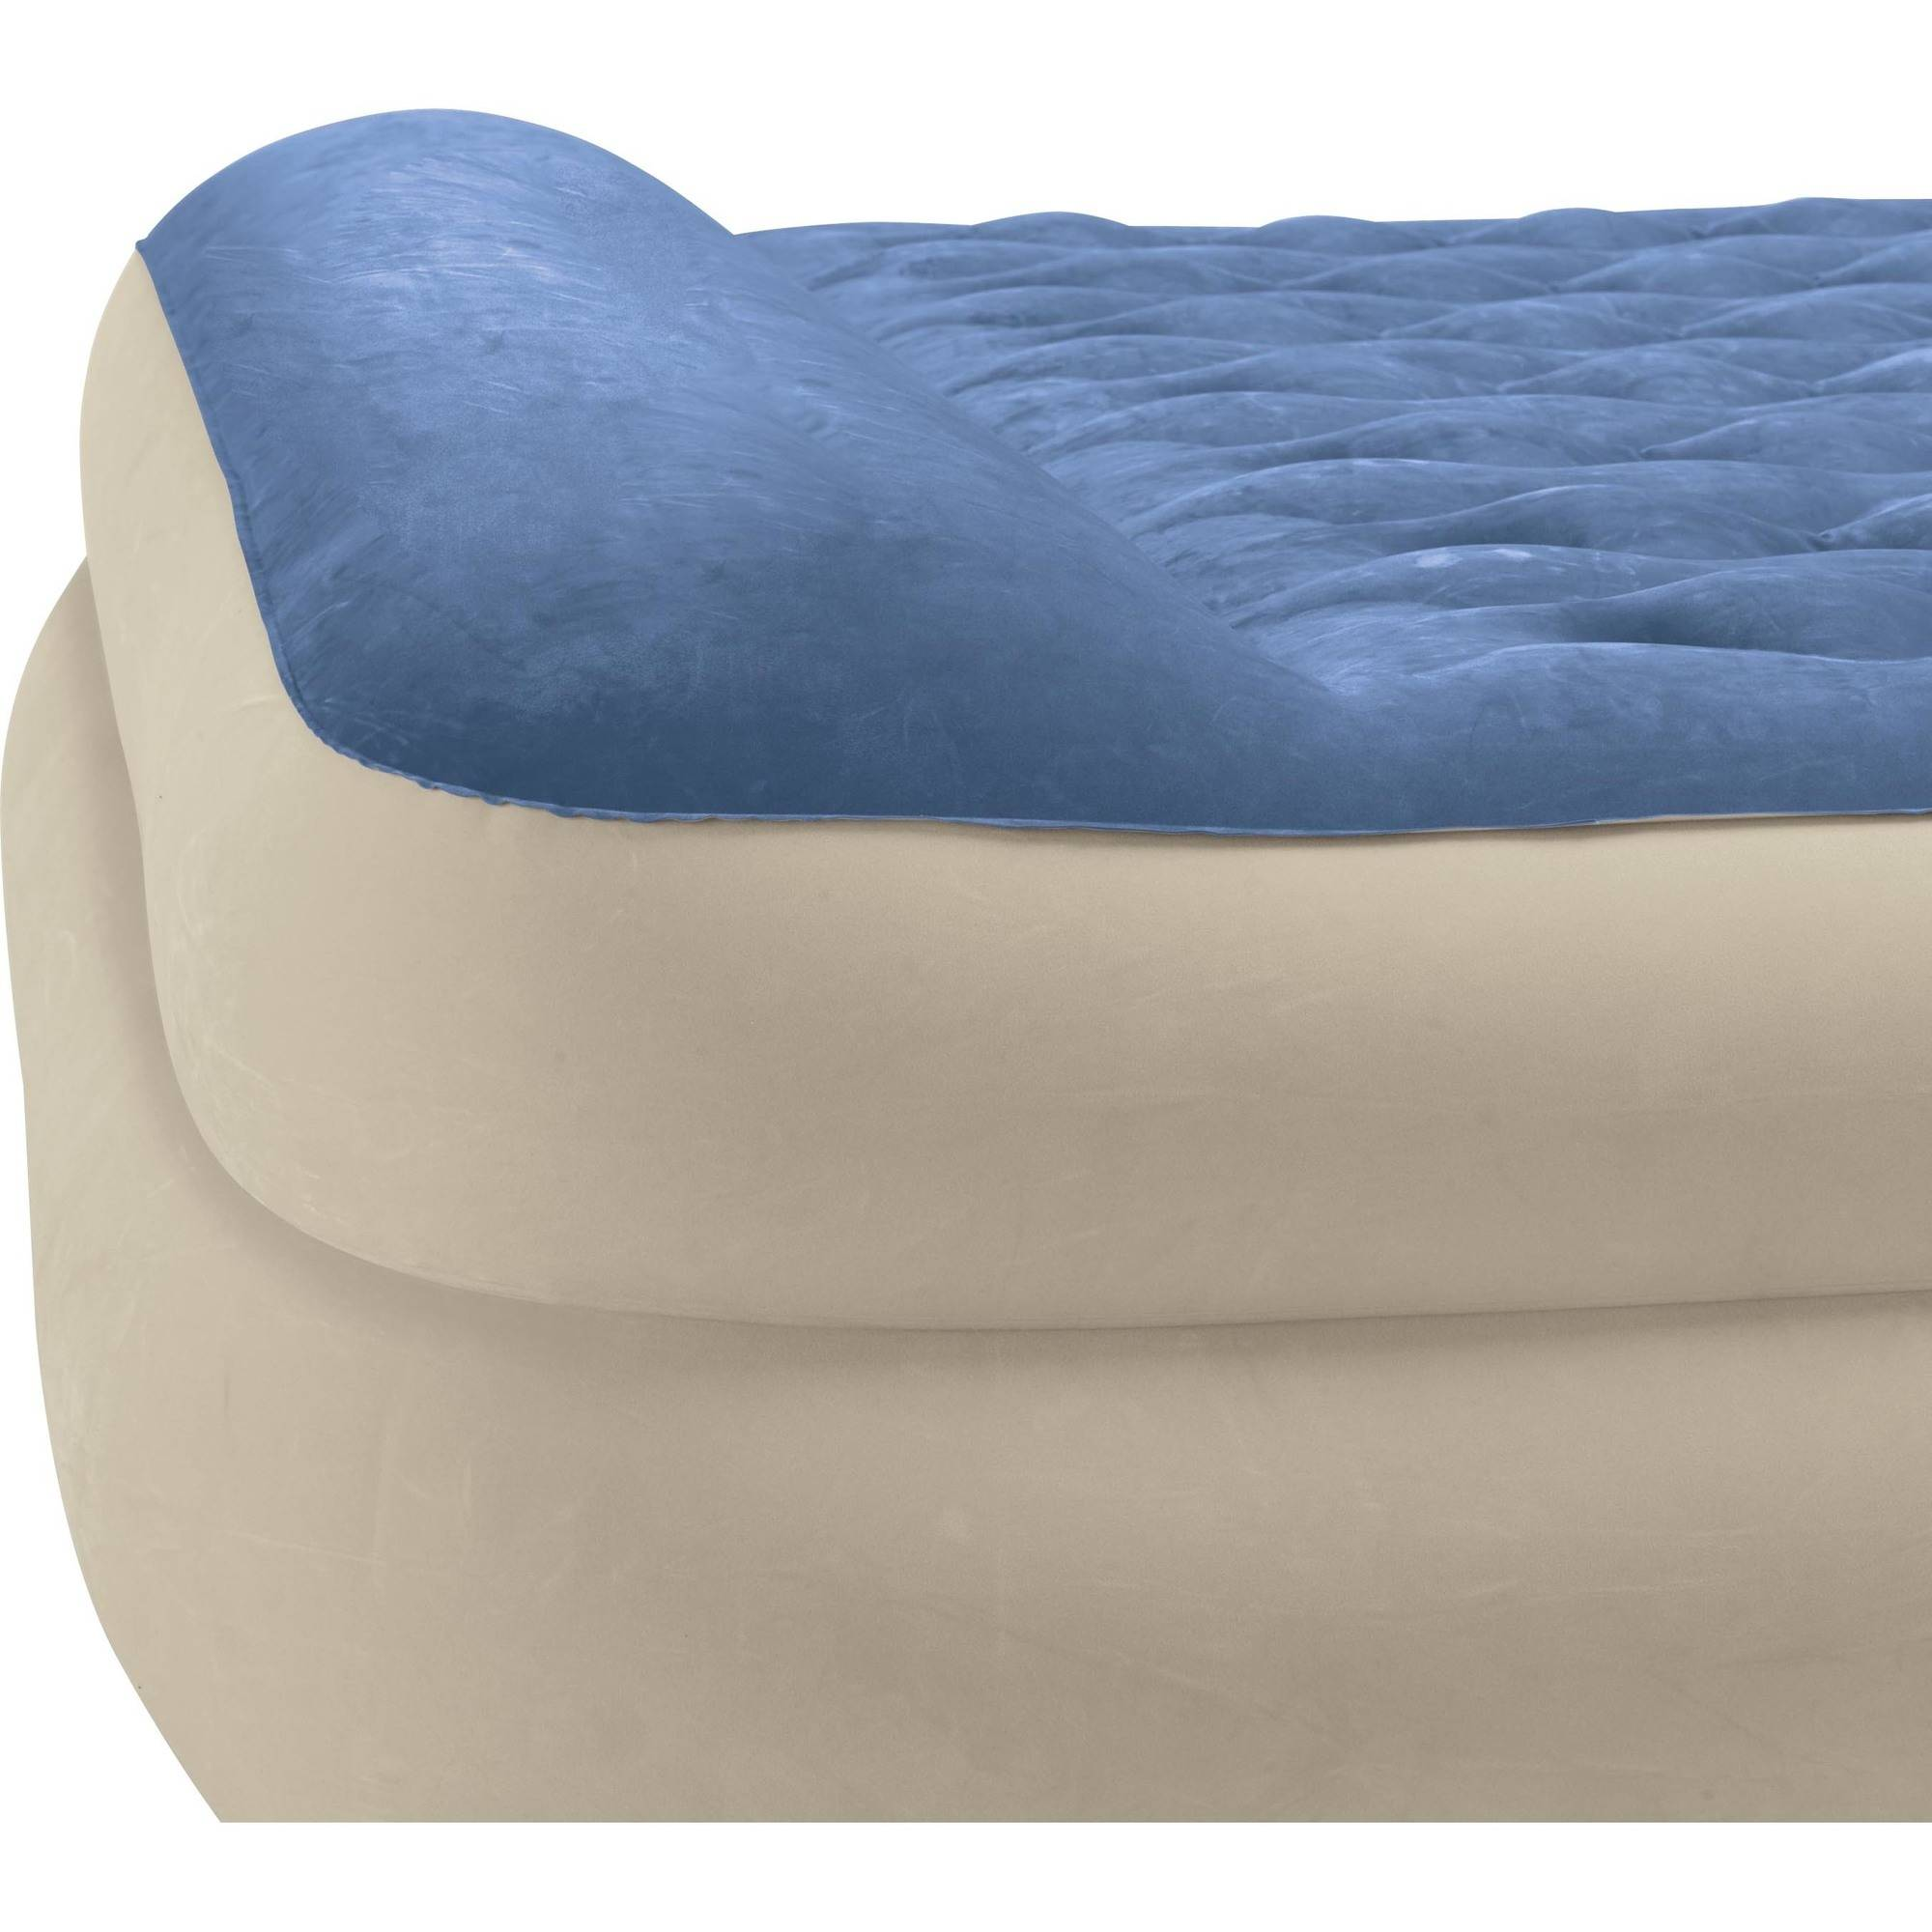 Bed rest pillow walmart - Bed Rest Pillow Walmart 16